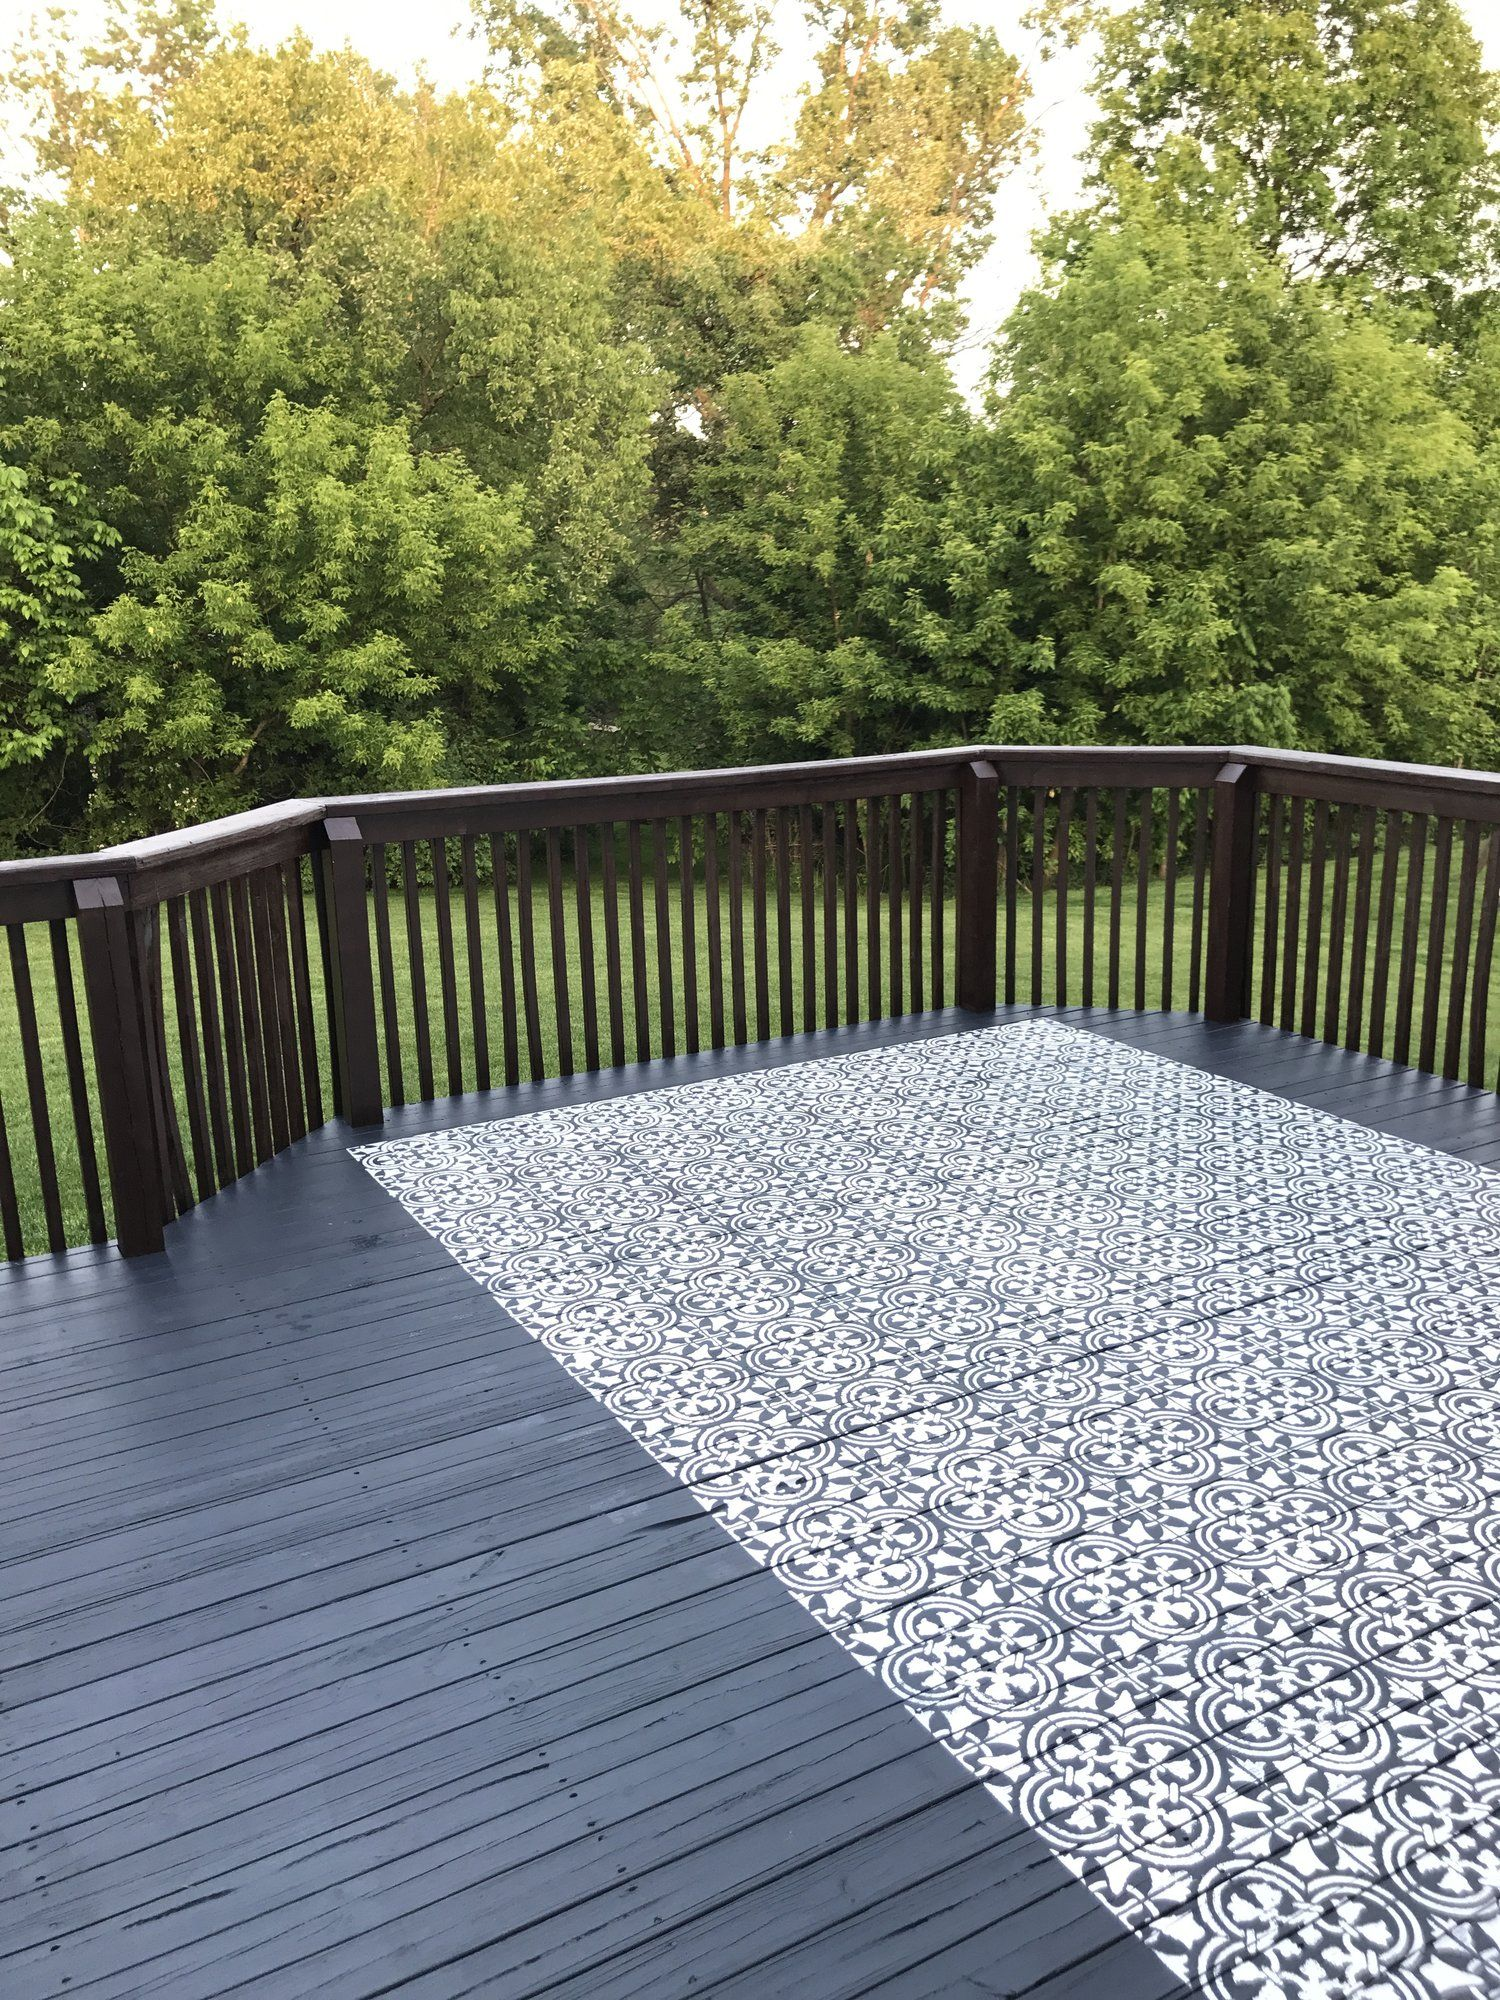 Outdoor Decor Stenciled Rug The Other Side Of Neutral In 2020 Painted Outdoor Decks Outdoor Rugs Patio Outdoor Decor